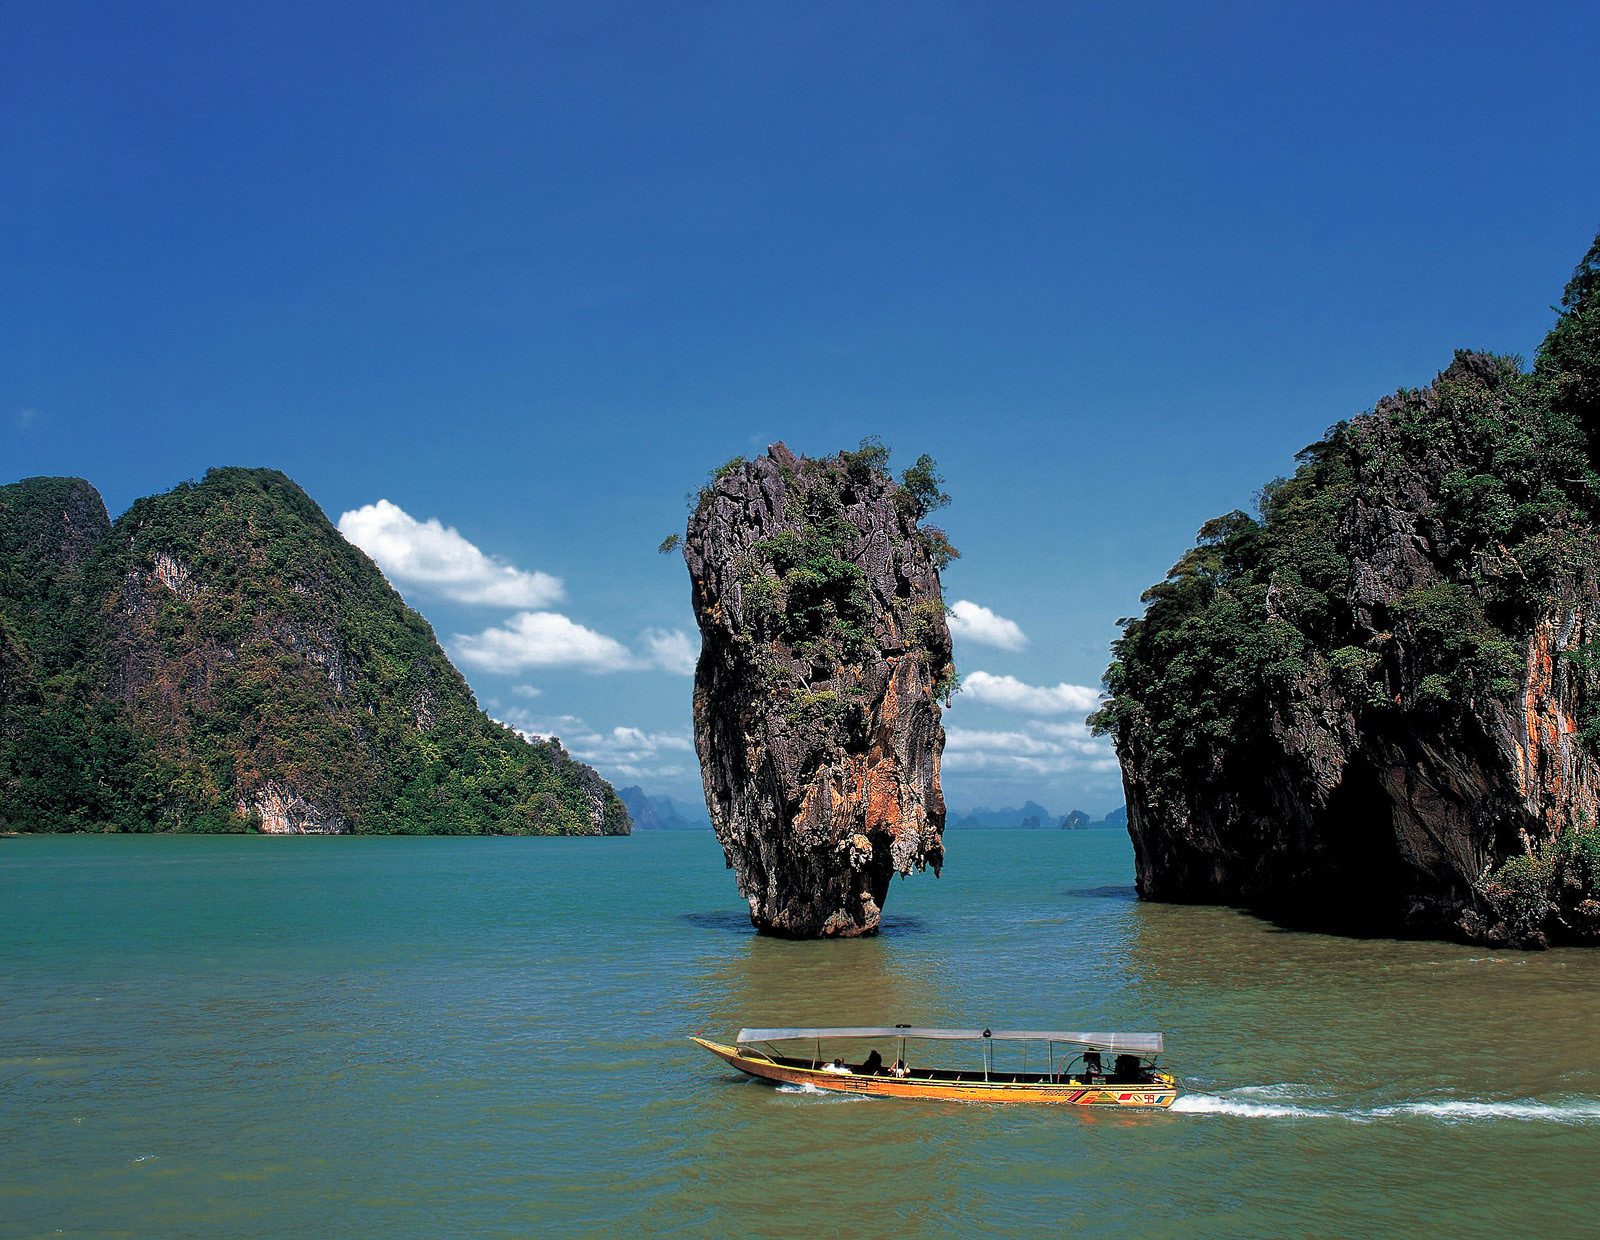 Qatar Airways will soon fly nonstop daily to Phuket.